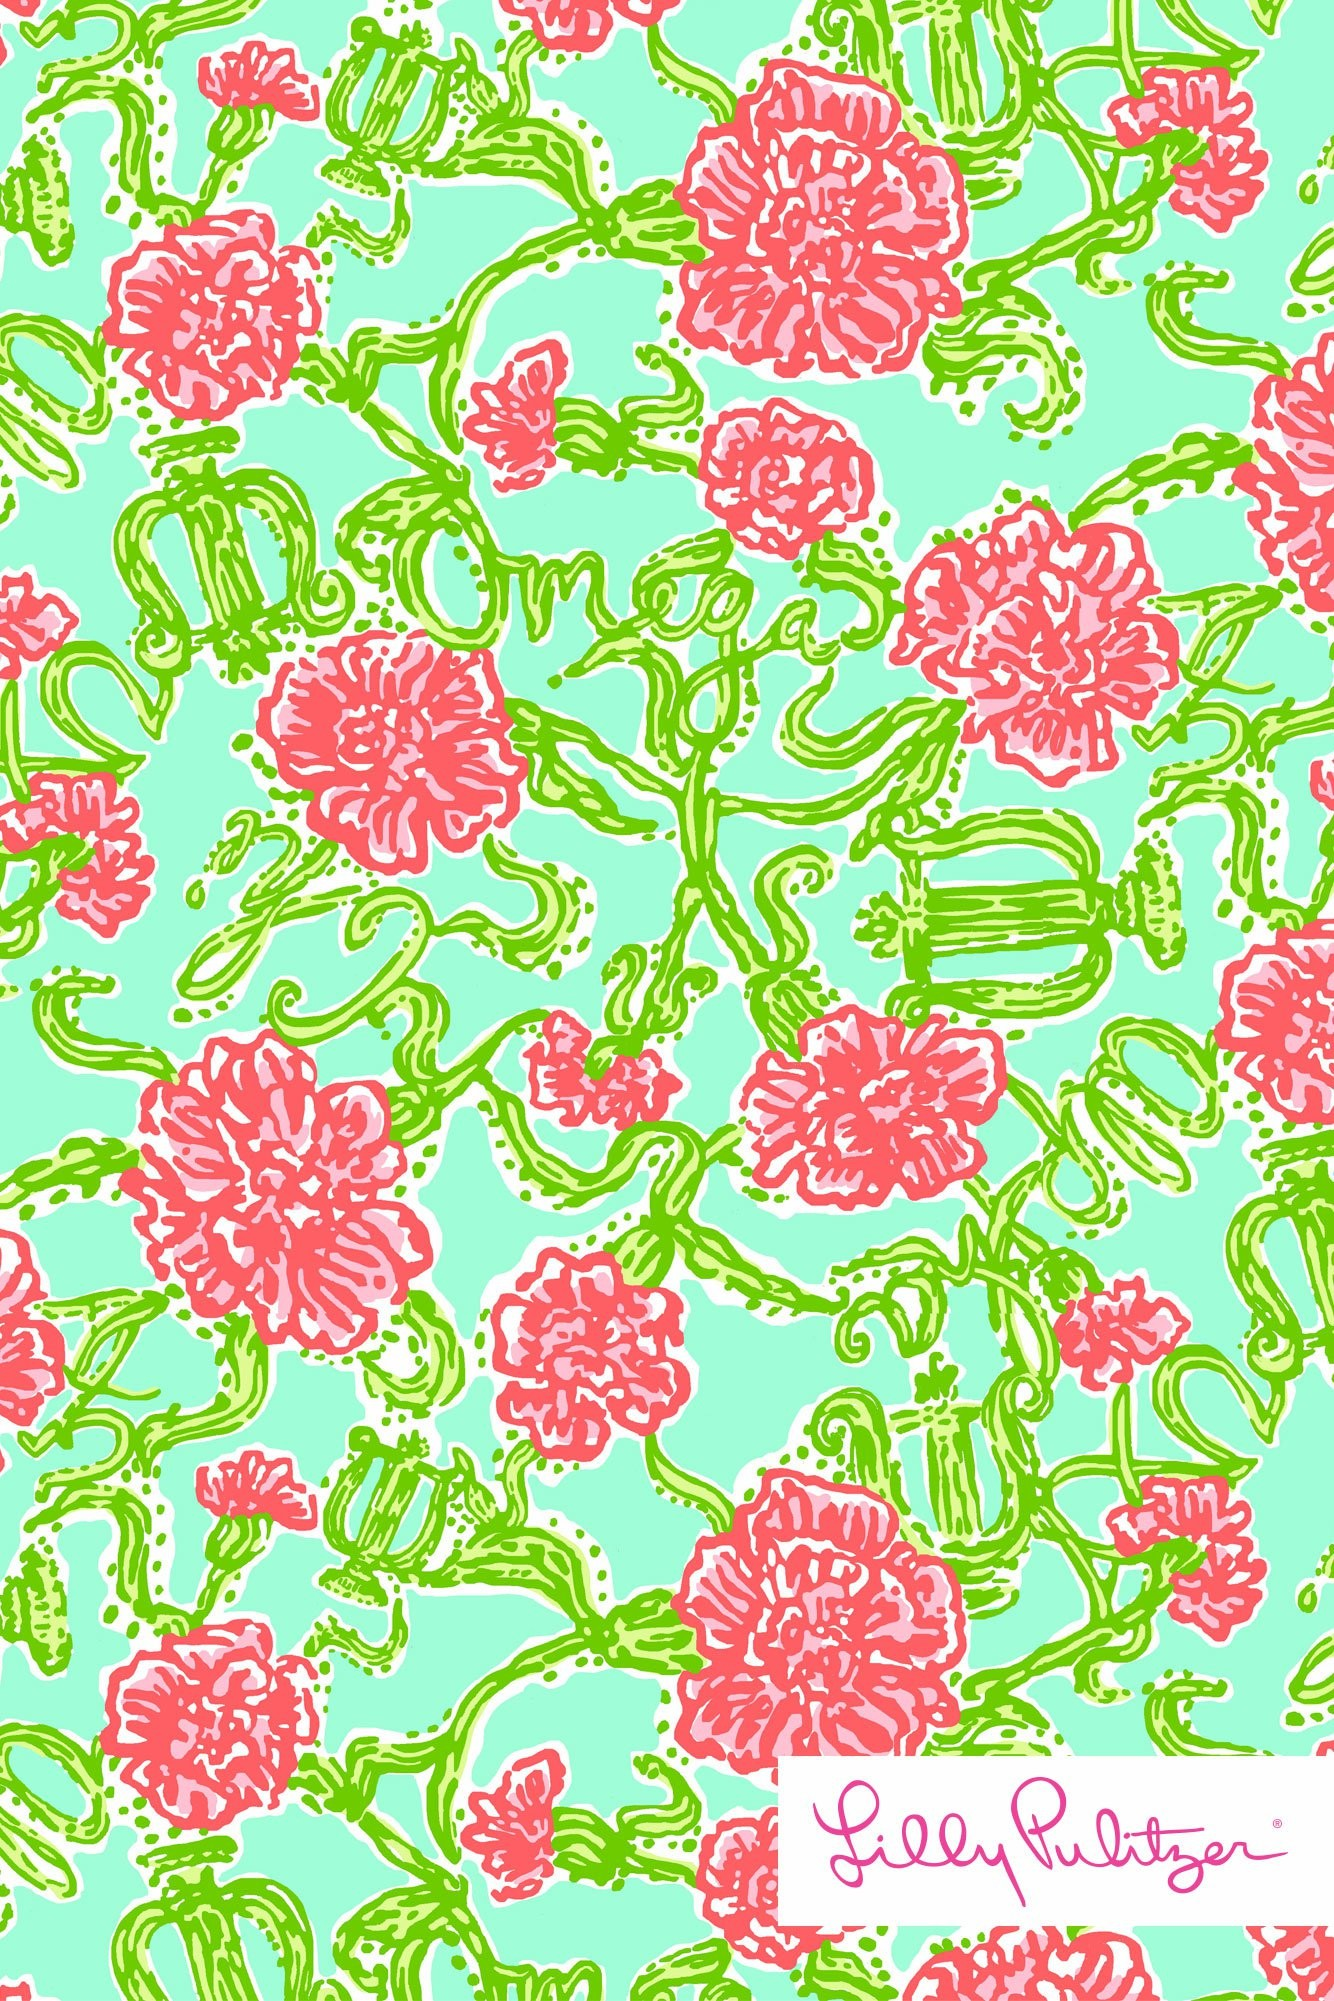 Lilly Pulitzer Iphone Backgrounds Quotes Lilly pulitzer